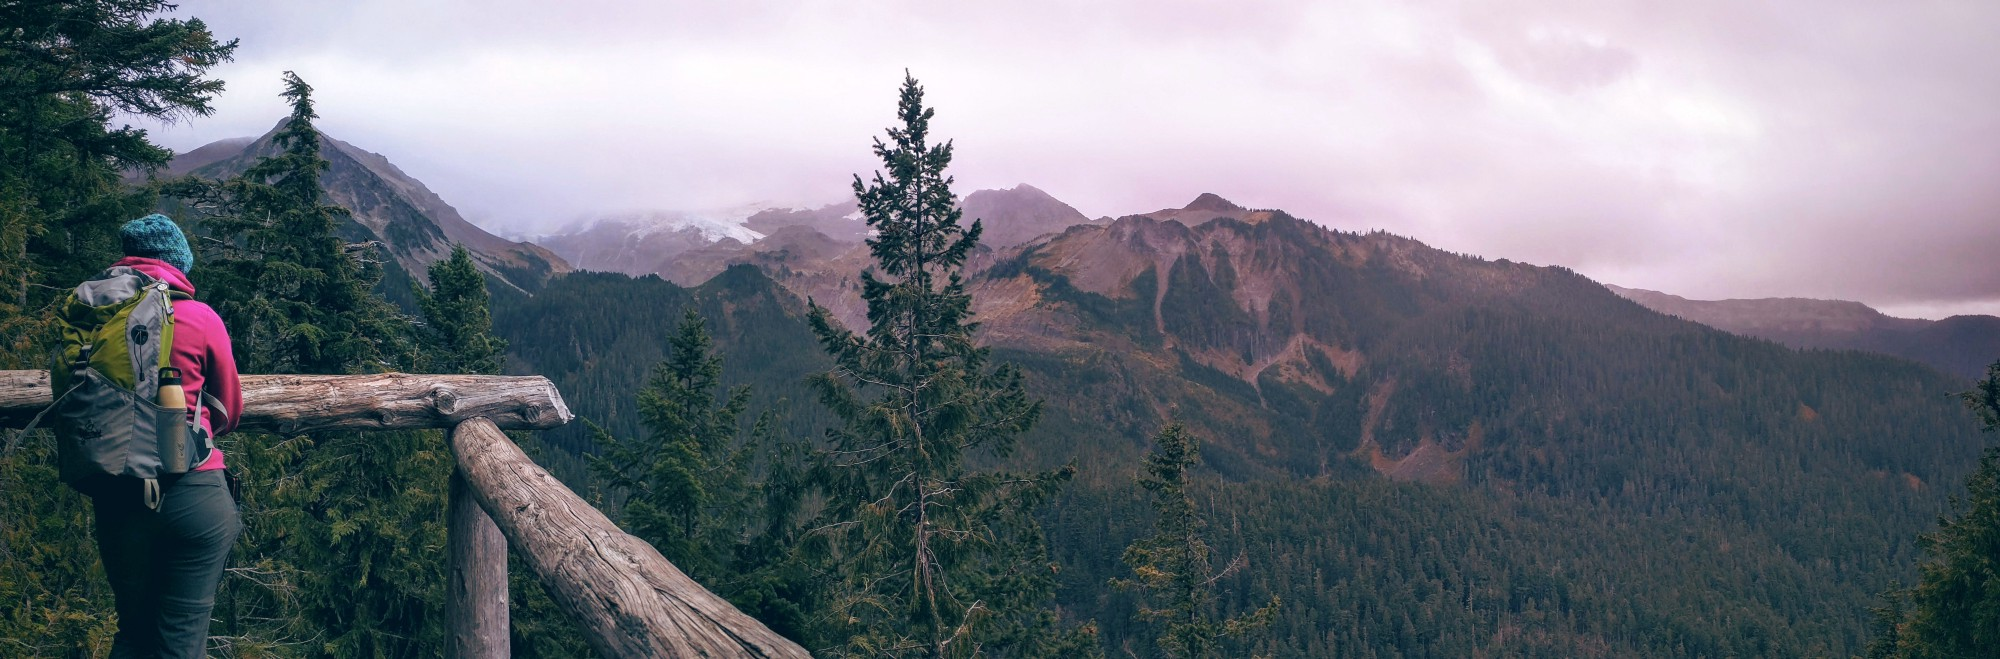 Spray Falls Trail - Pacific North Wanderers.jpg